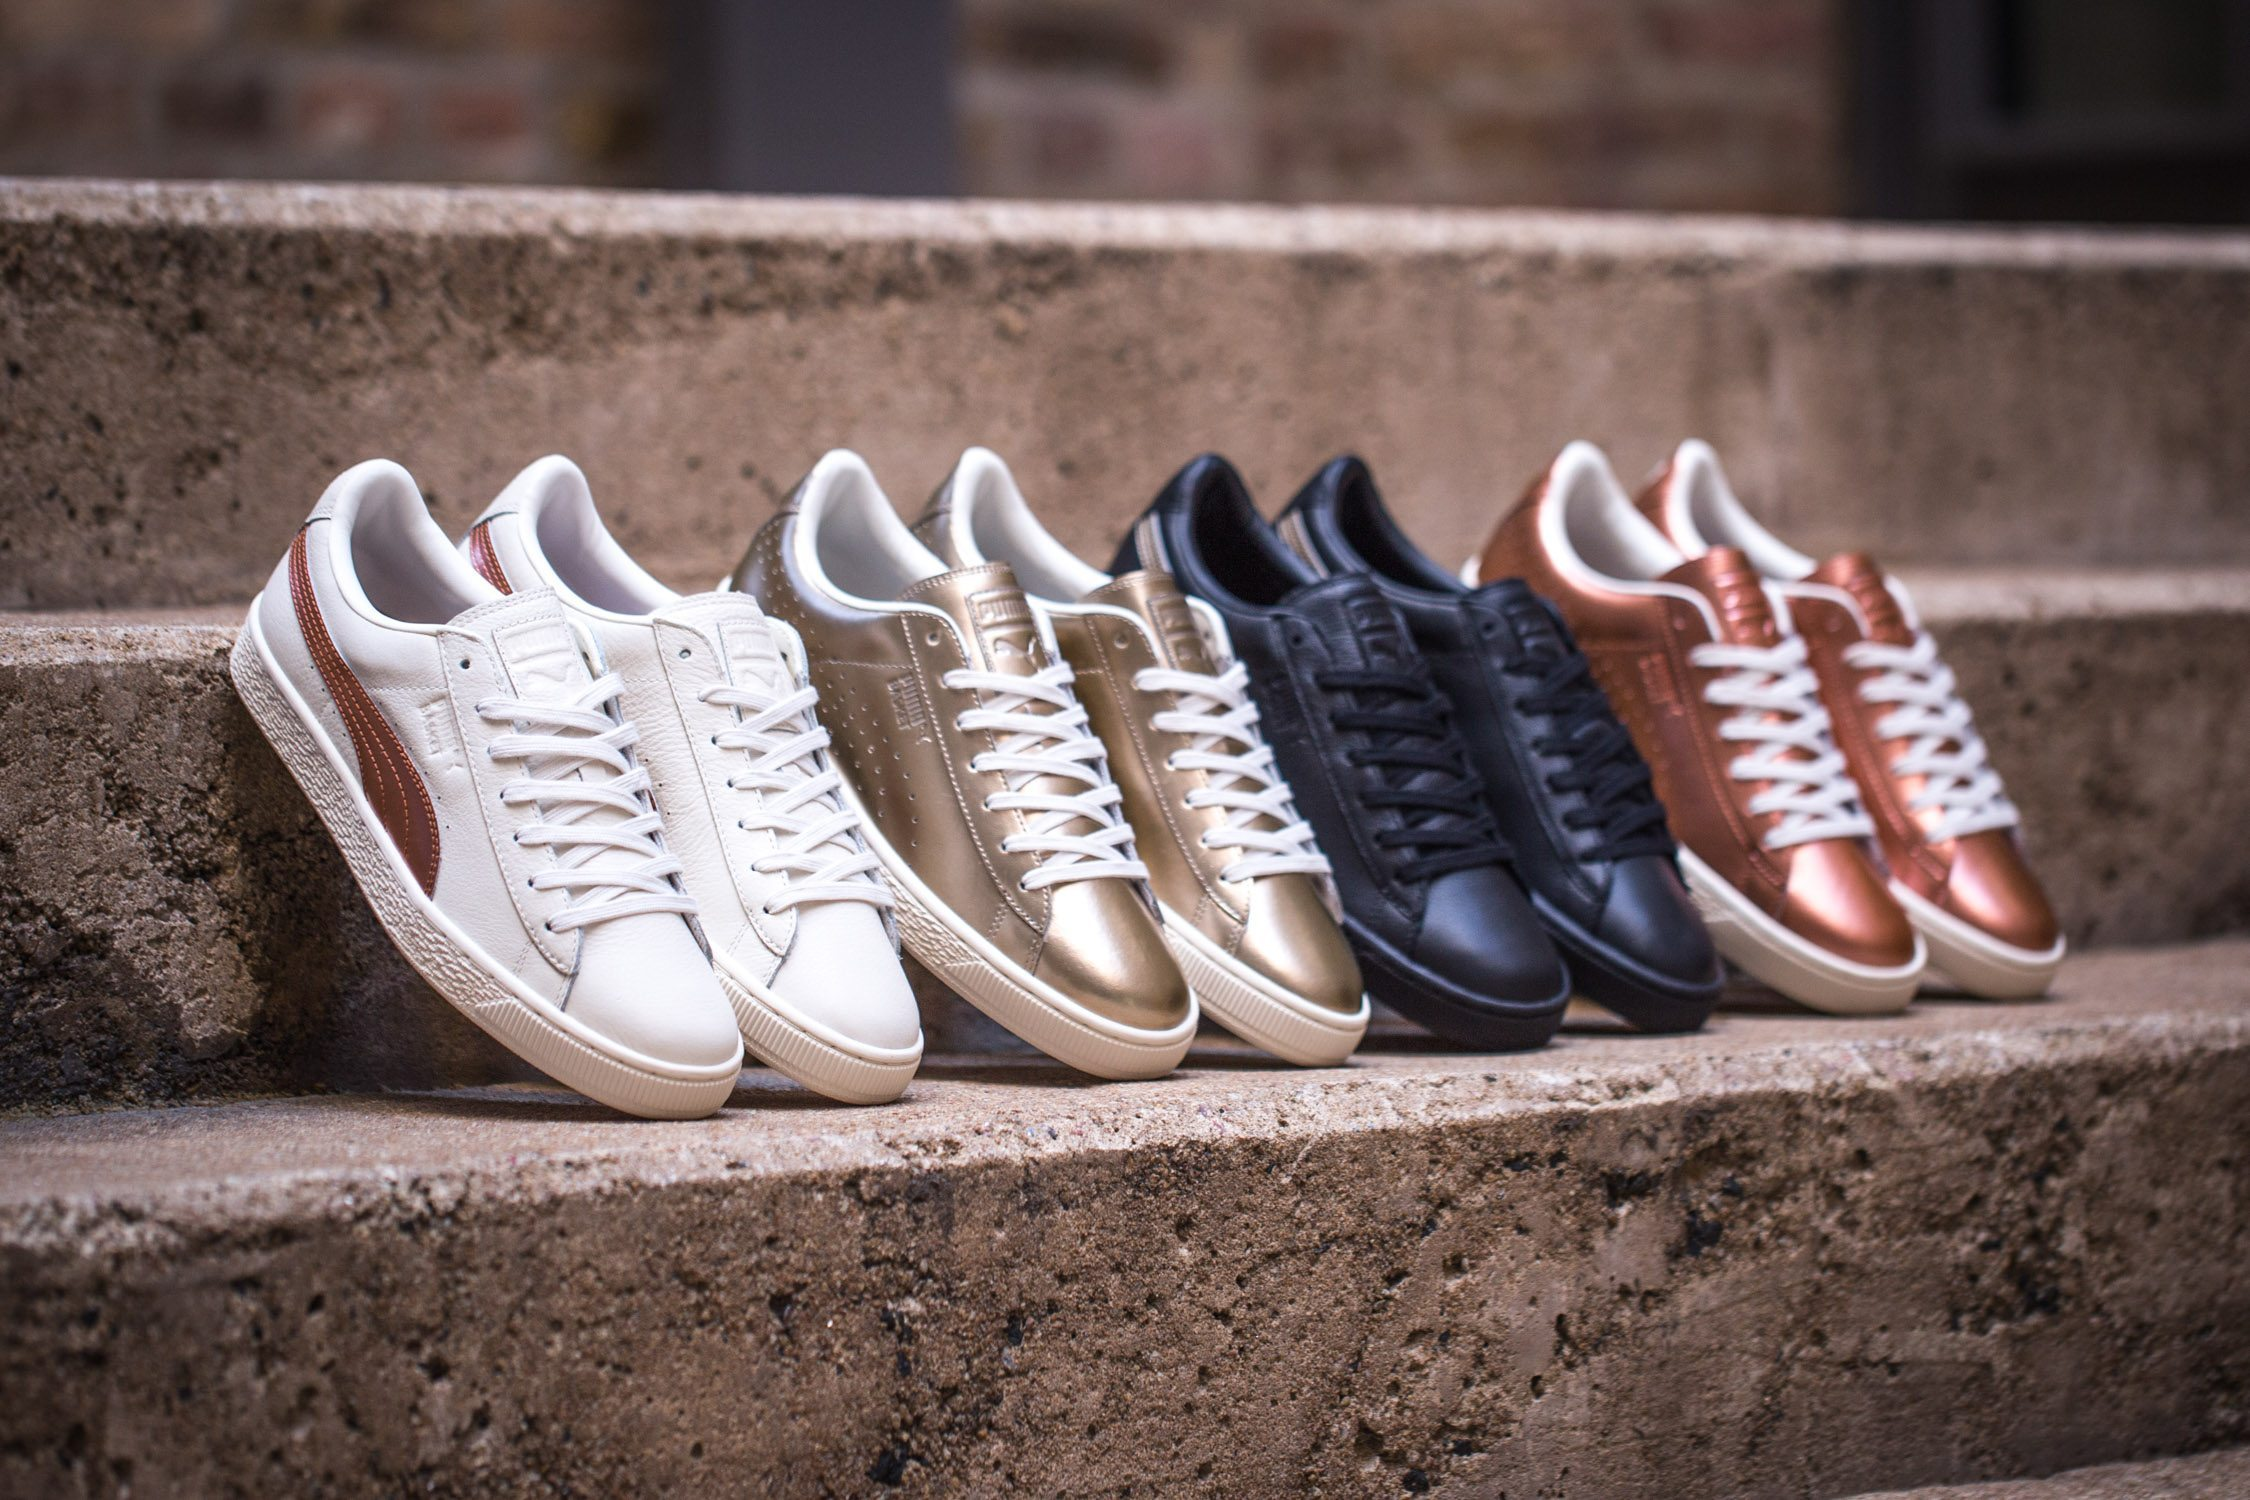 SNIPES x PUMA Basket Metallic Pack 1